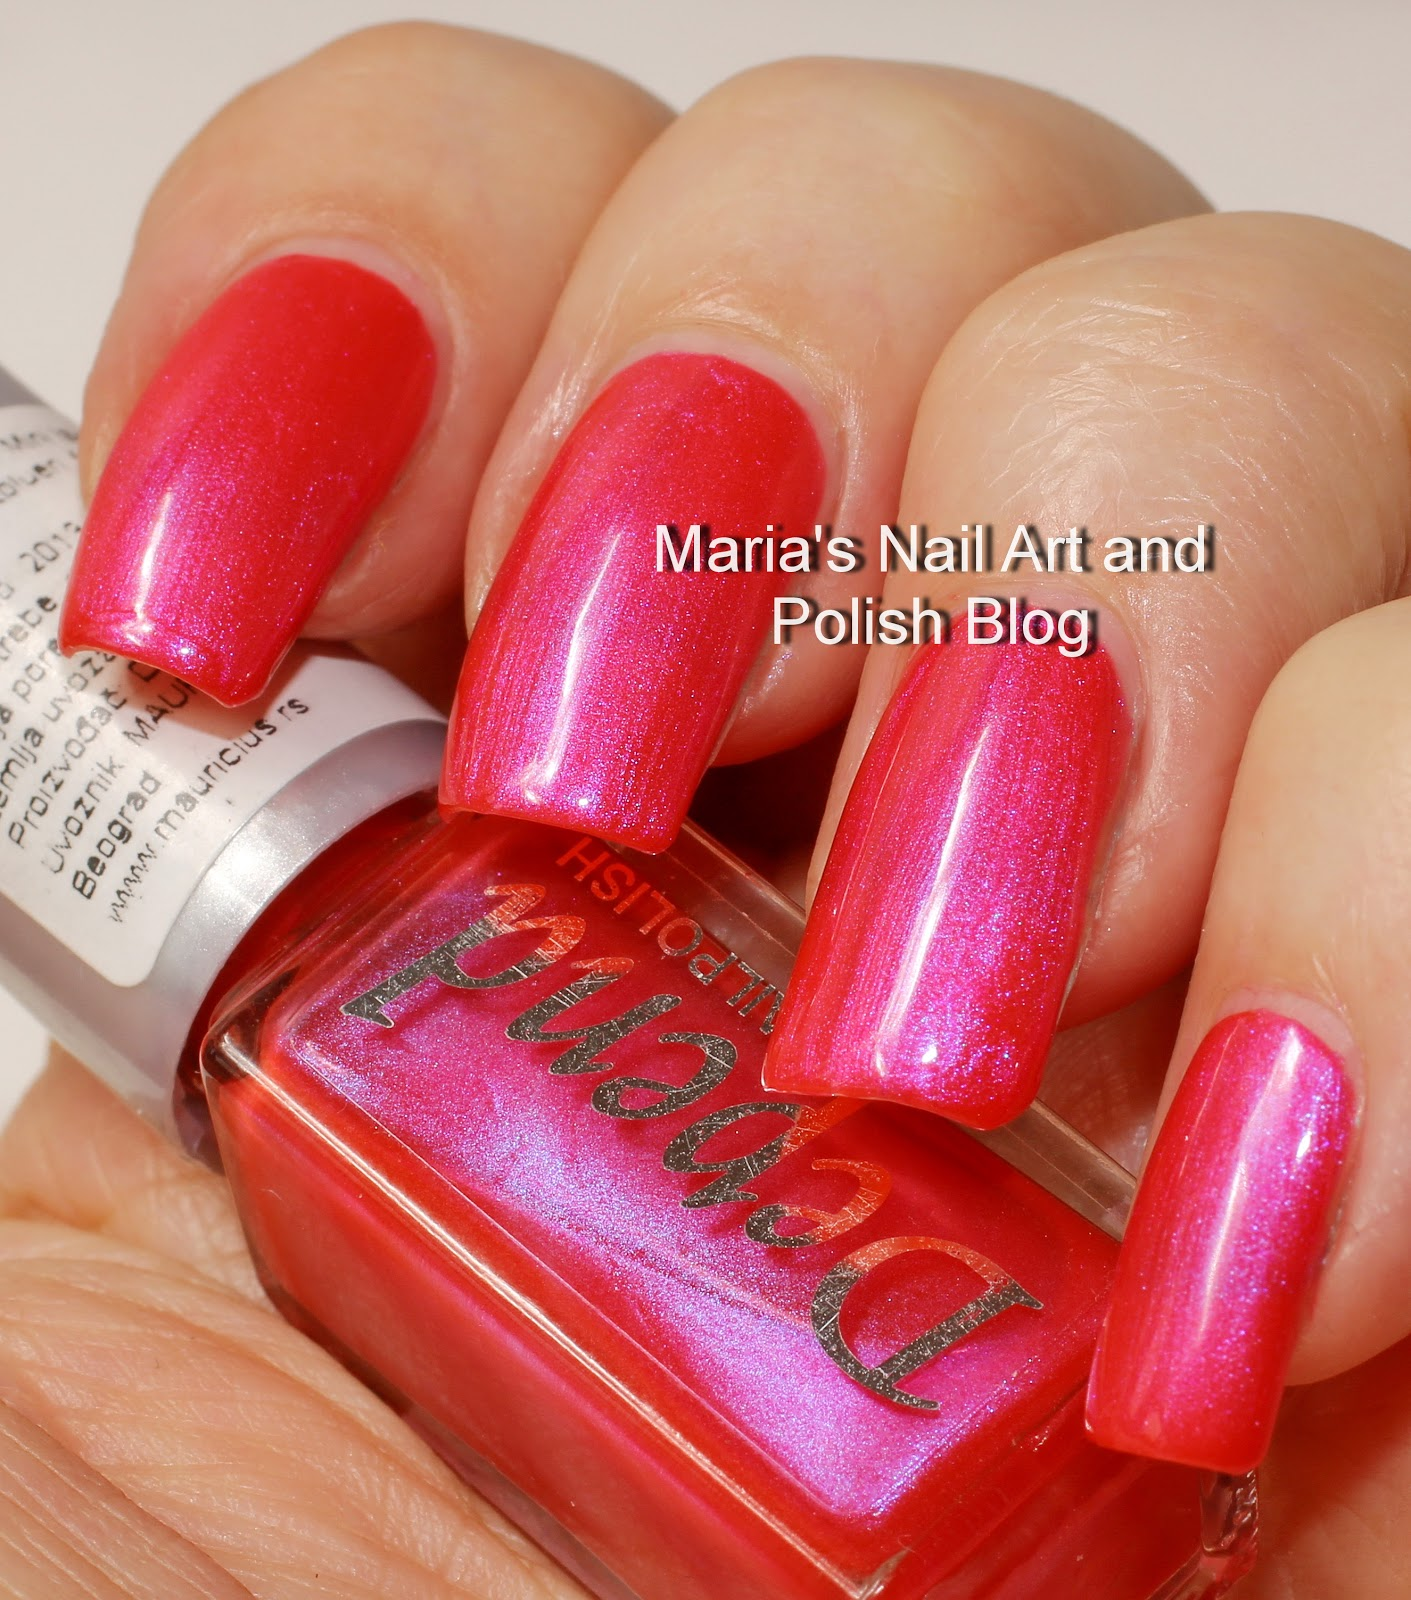 Marias Nail Art And Polish Blog Flushed With Stripes And: Marias Nail Art And Polish Blog: Depend Swatches: 122, 318